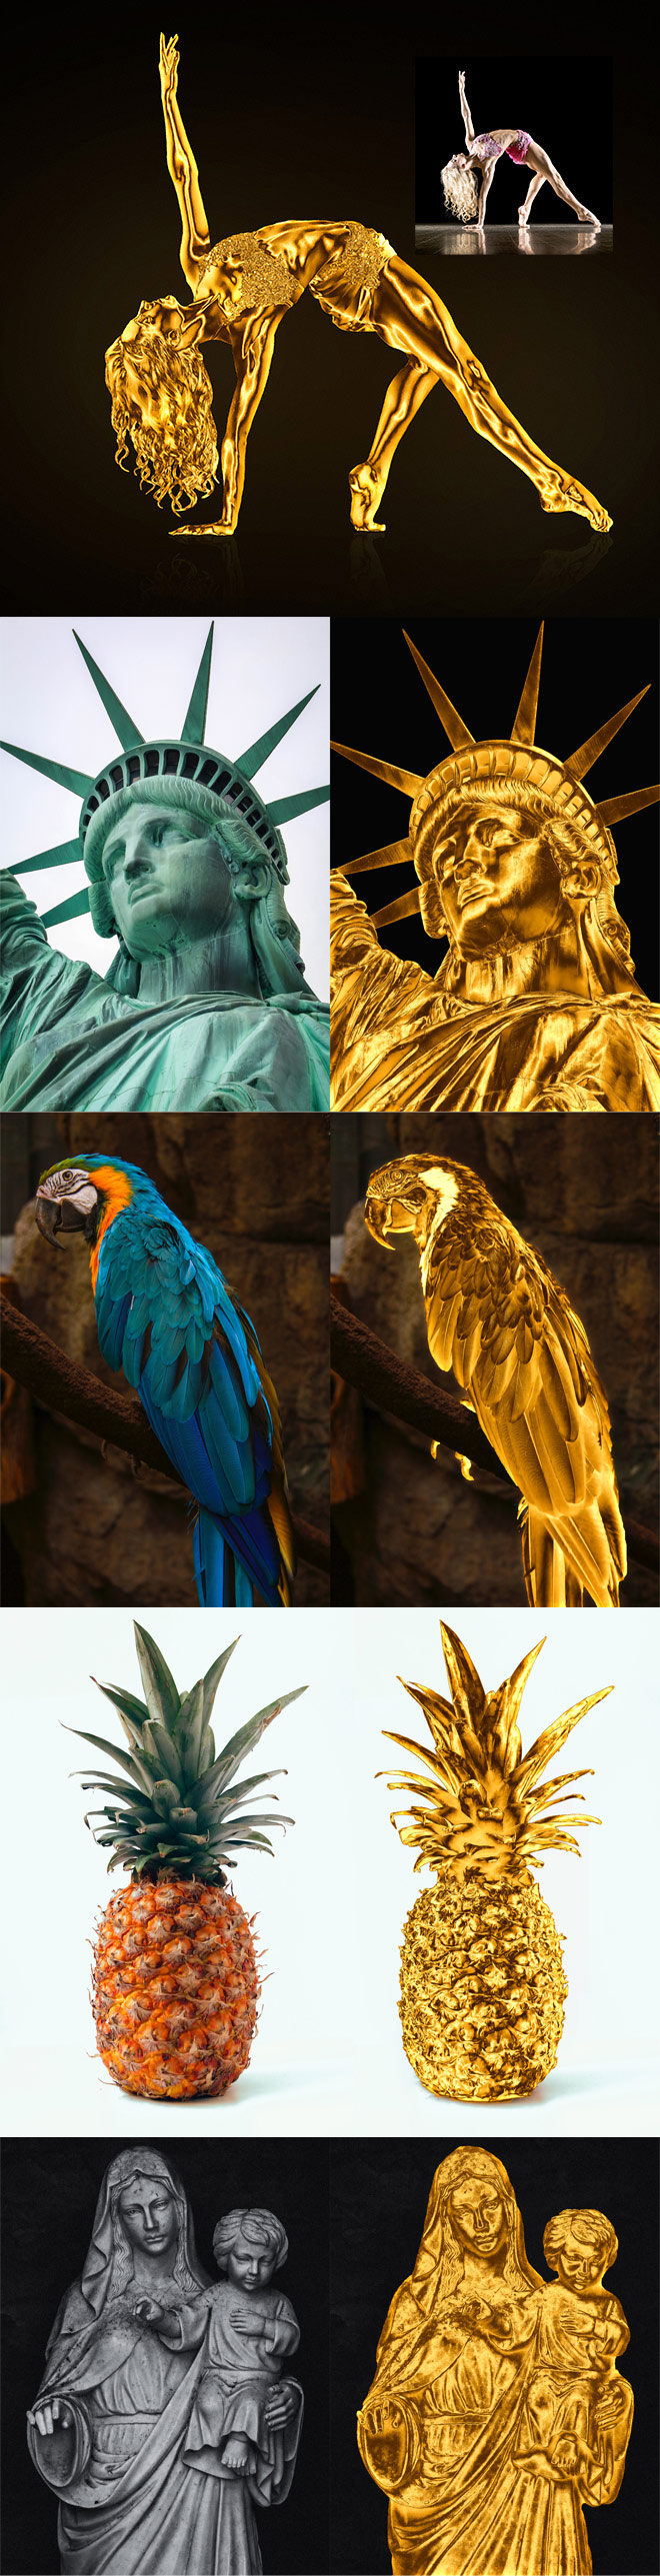 How to Turn Anything into Gold in Photoshop!